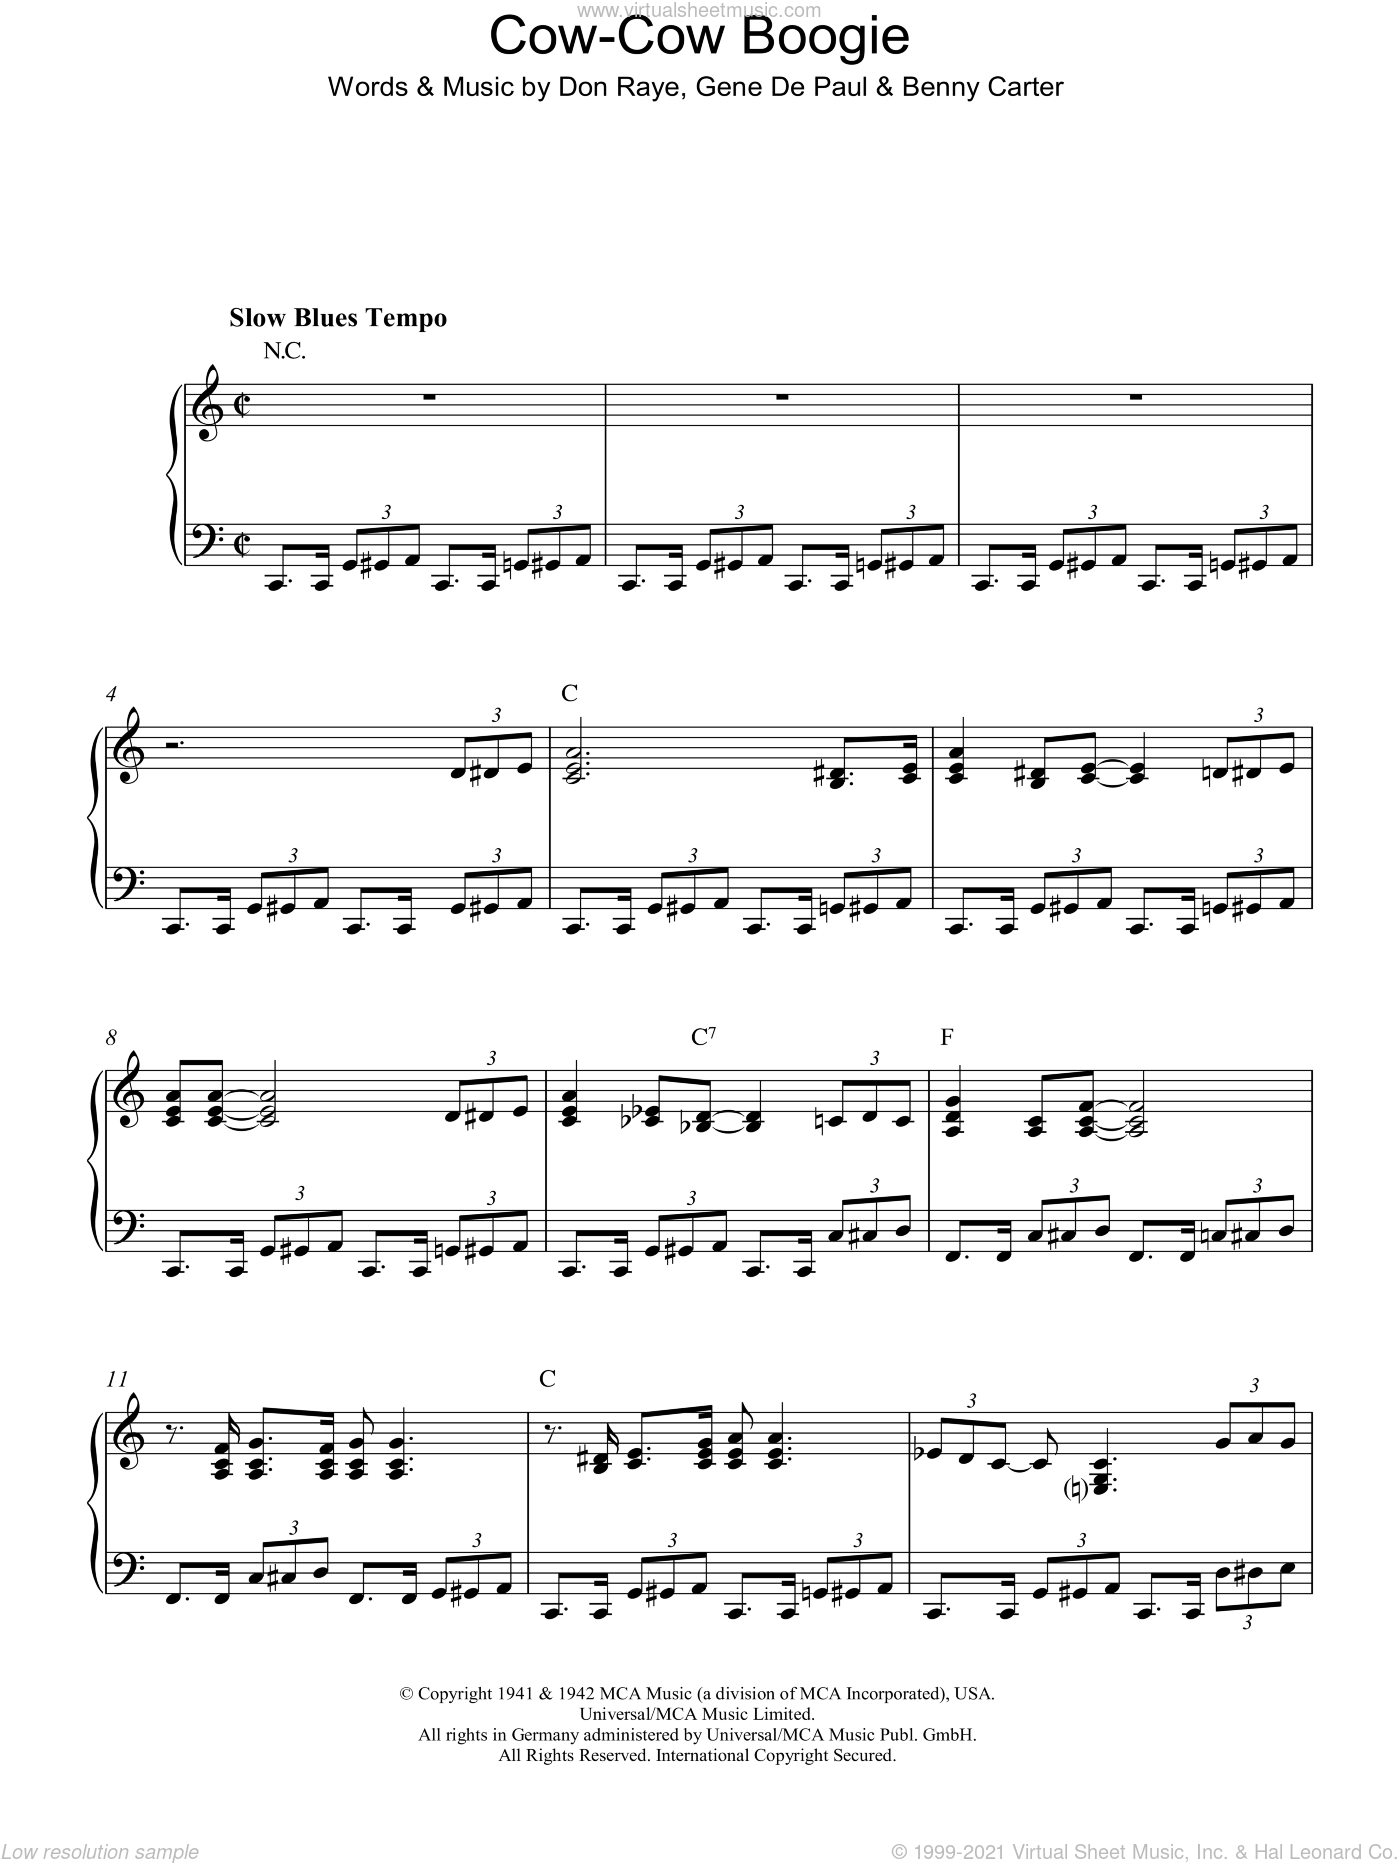 Cow-Cow Boogie sheet music for piano solo by Gene DePaul, Ella Fitzgerald, Benny Carter and Don Raye. Score Image Preview.